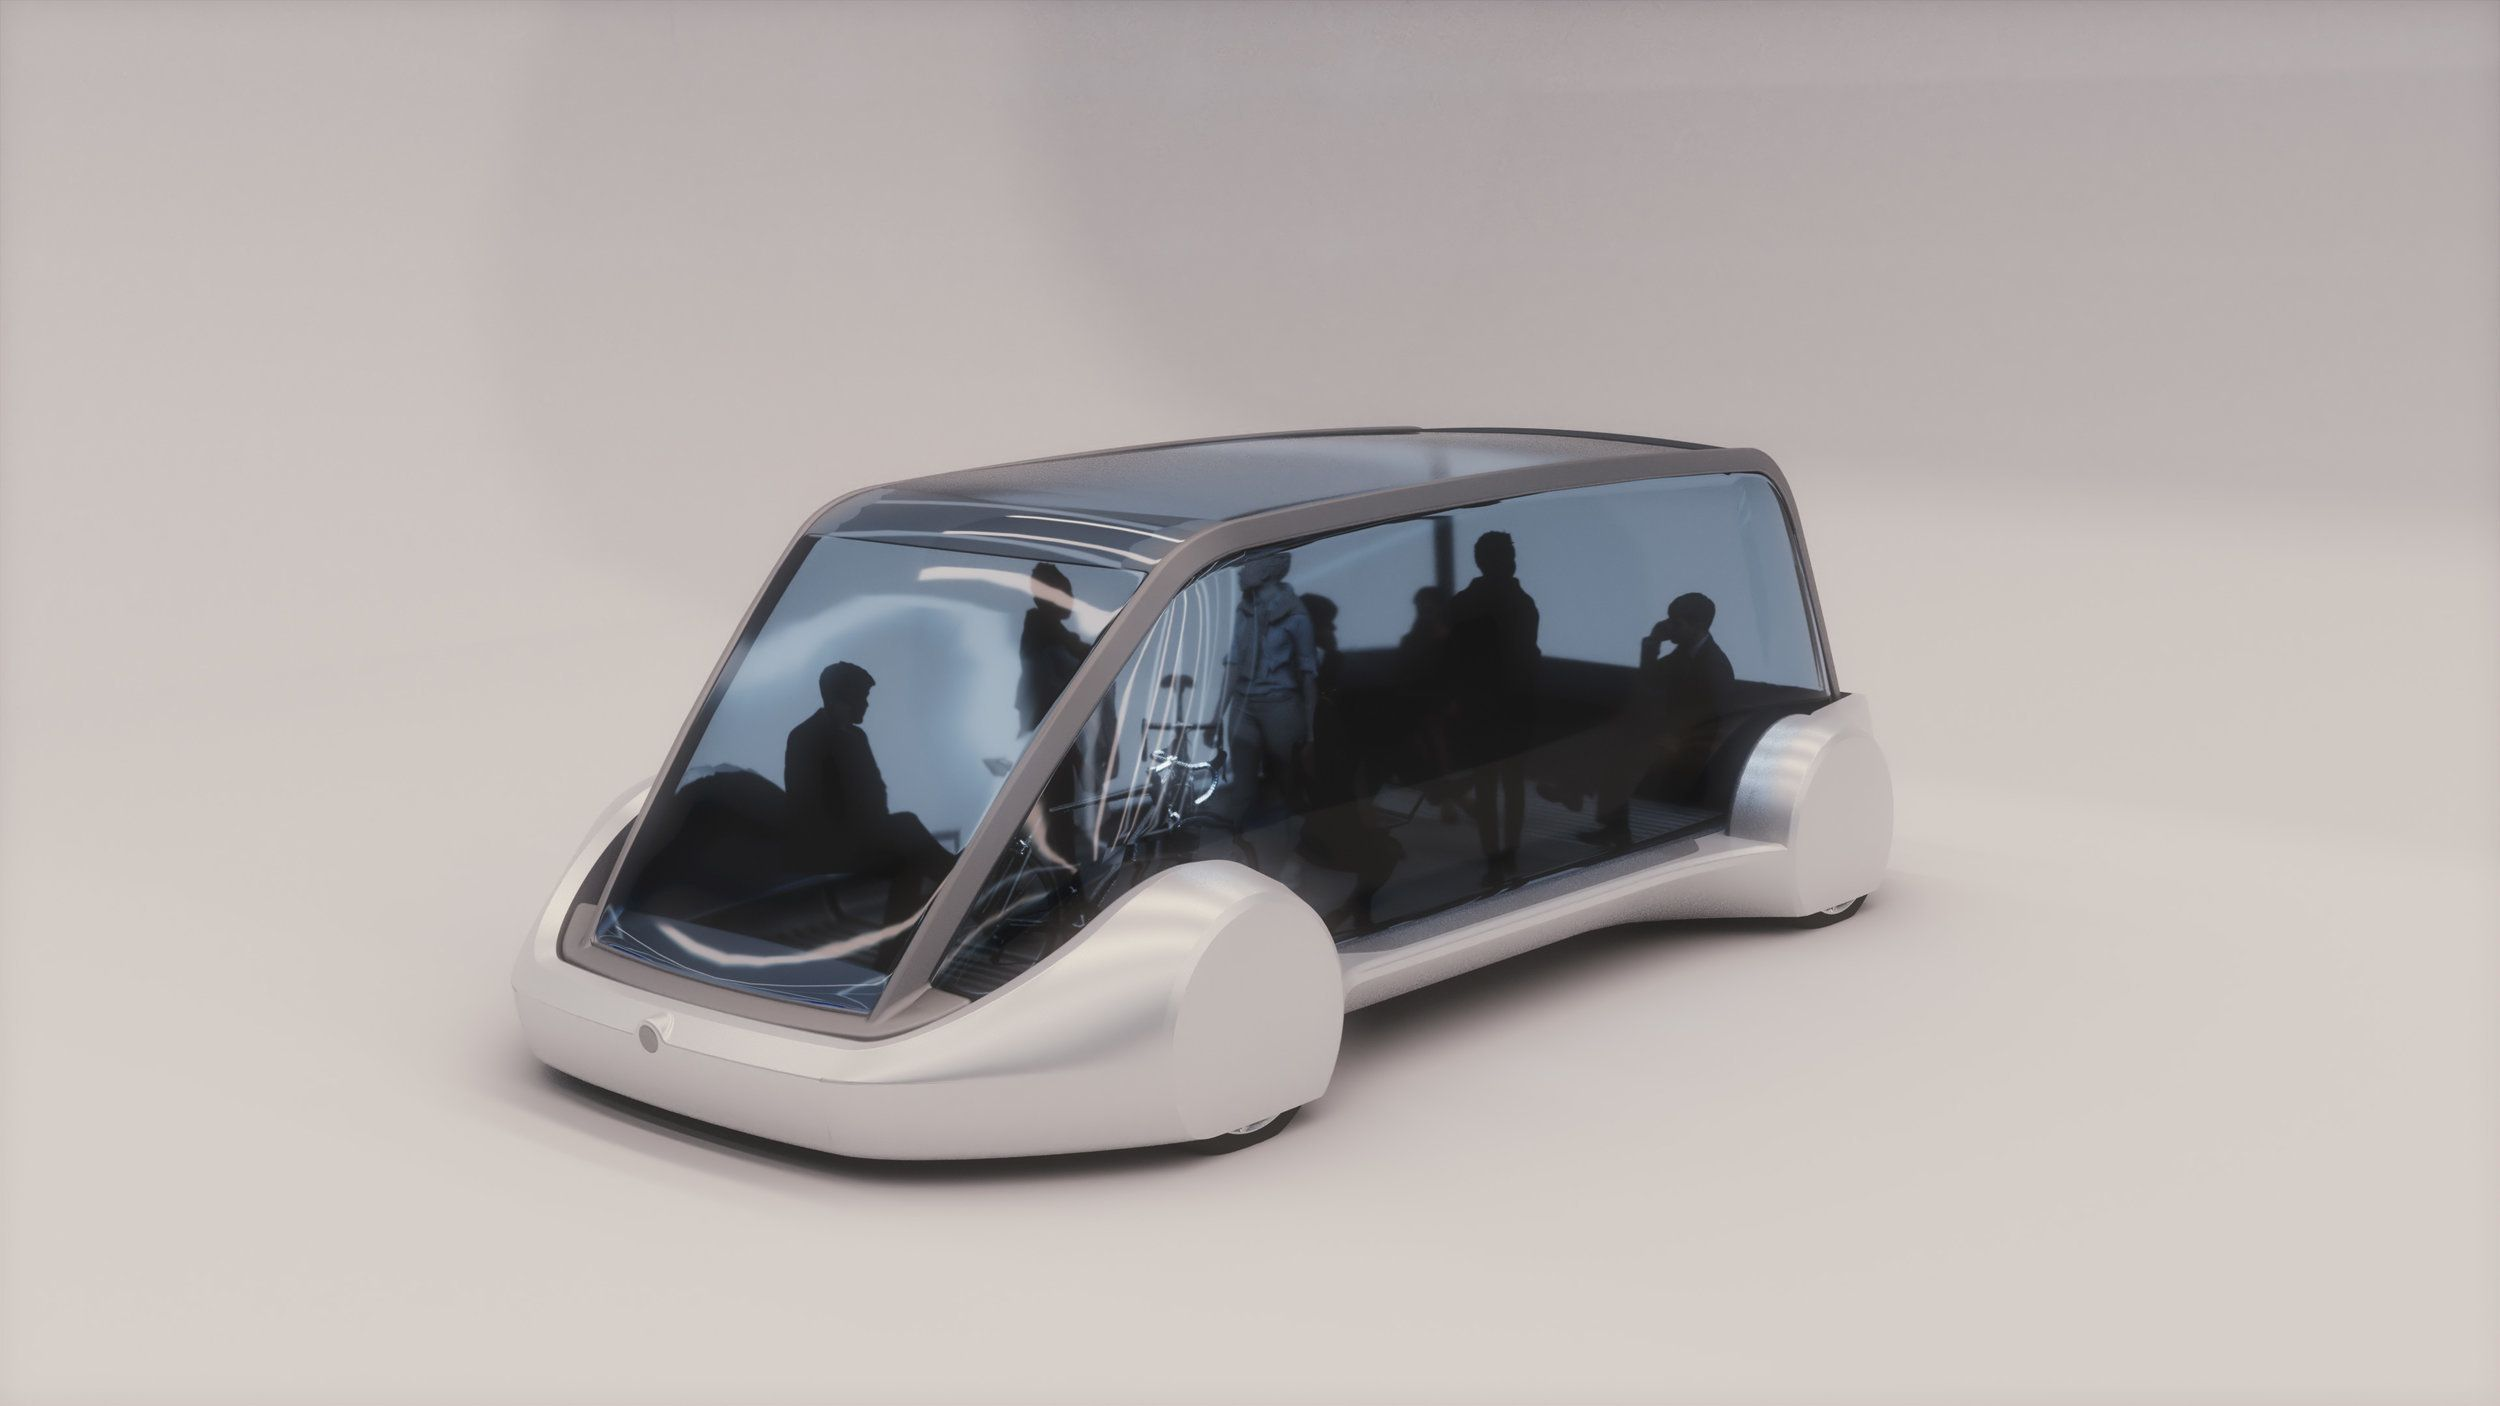 Elon Musk's Boring Company Wants To Reinvent The Bus, Here's